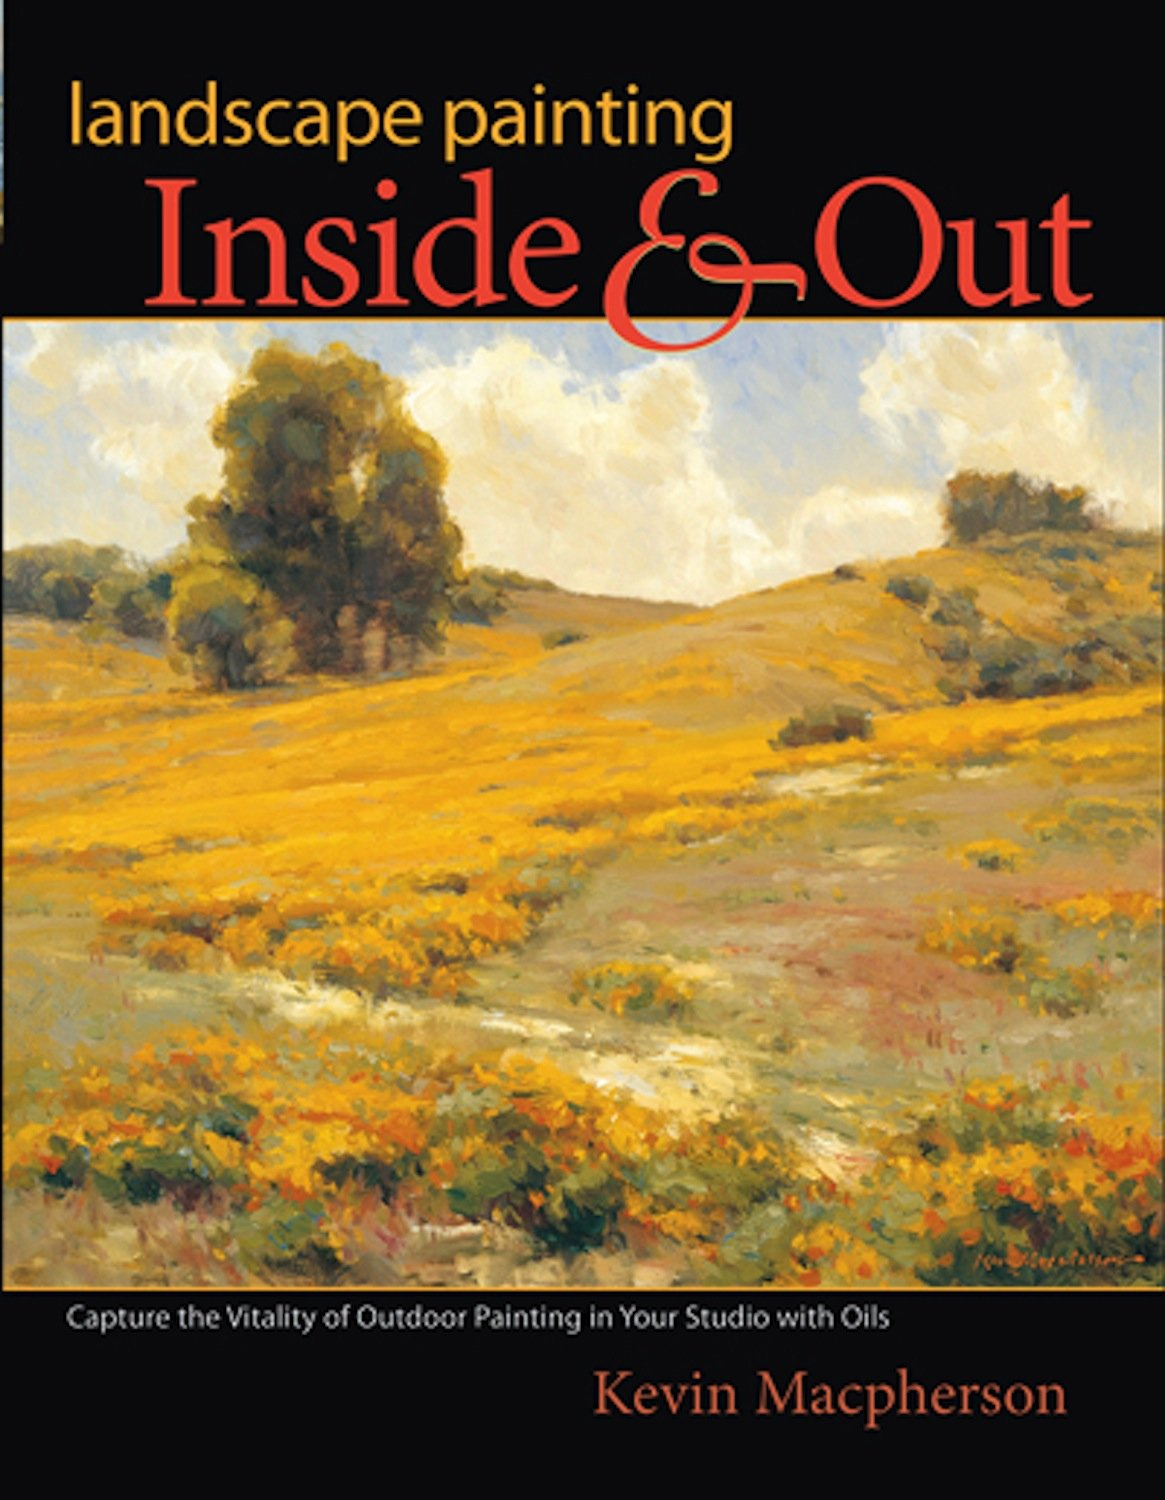 Download Landscape Painting Inside and Out: Capture the Vitality of Outdoor Painting in Your Studio With Oils pdf